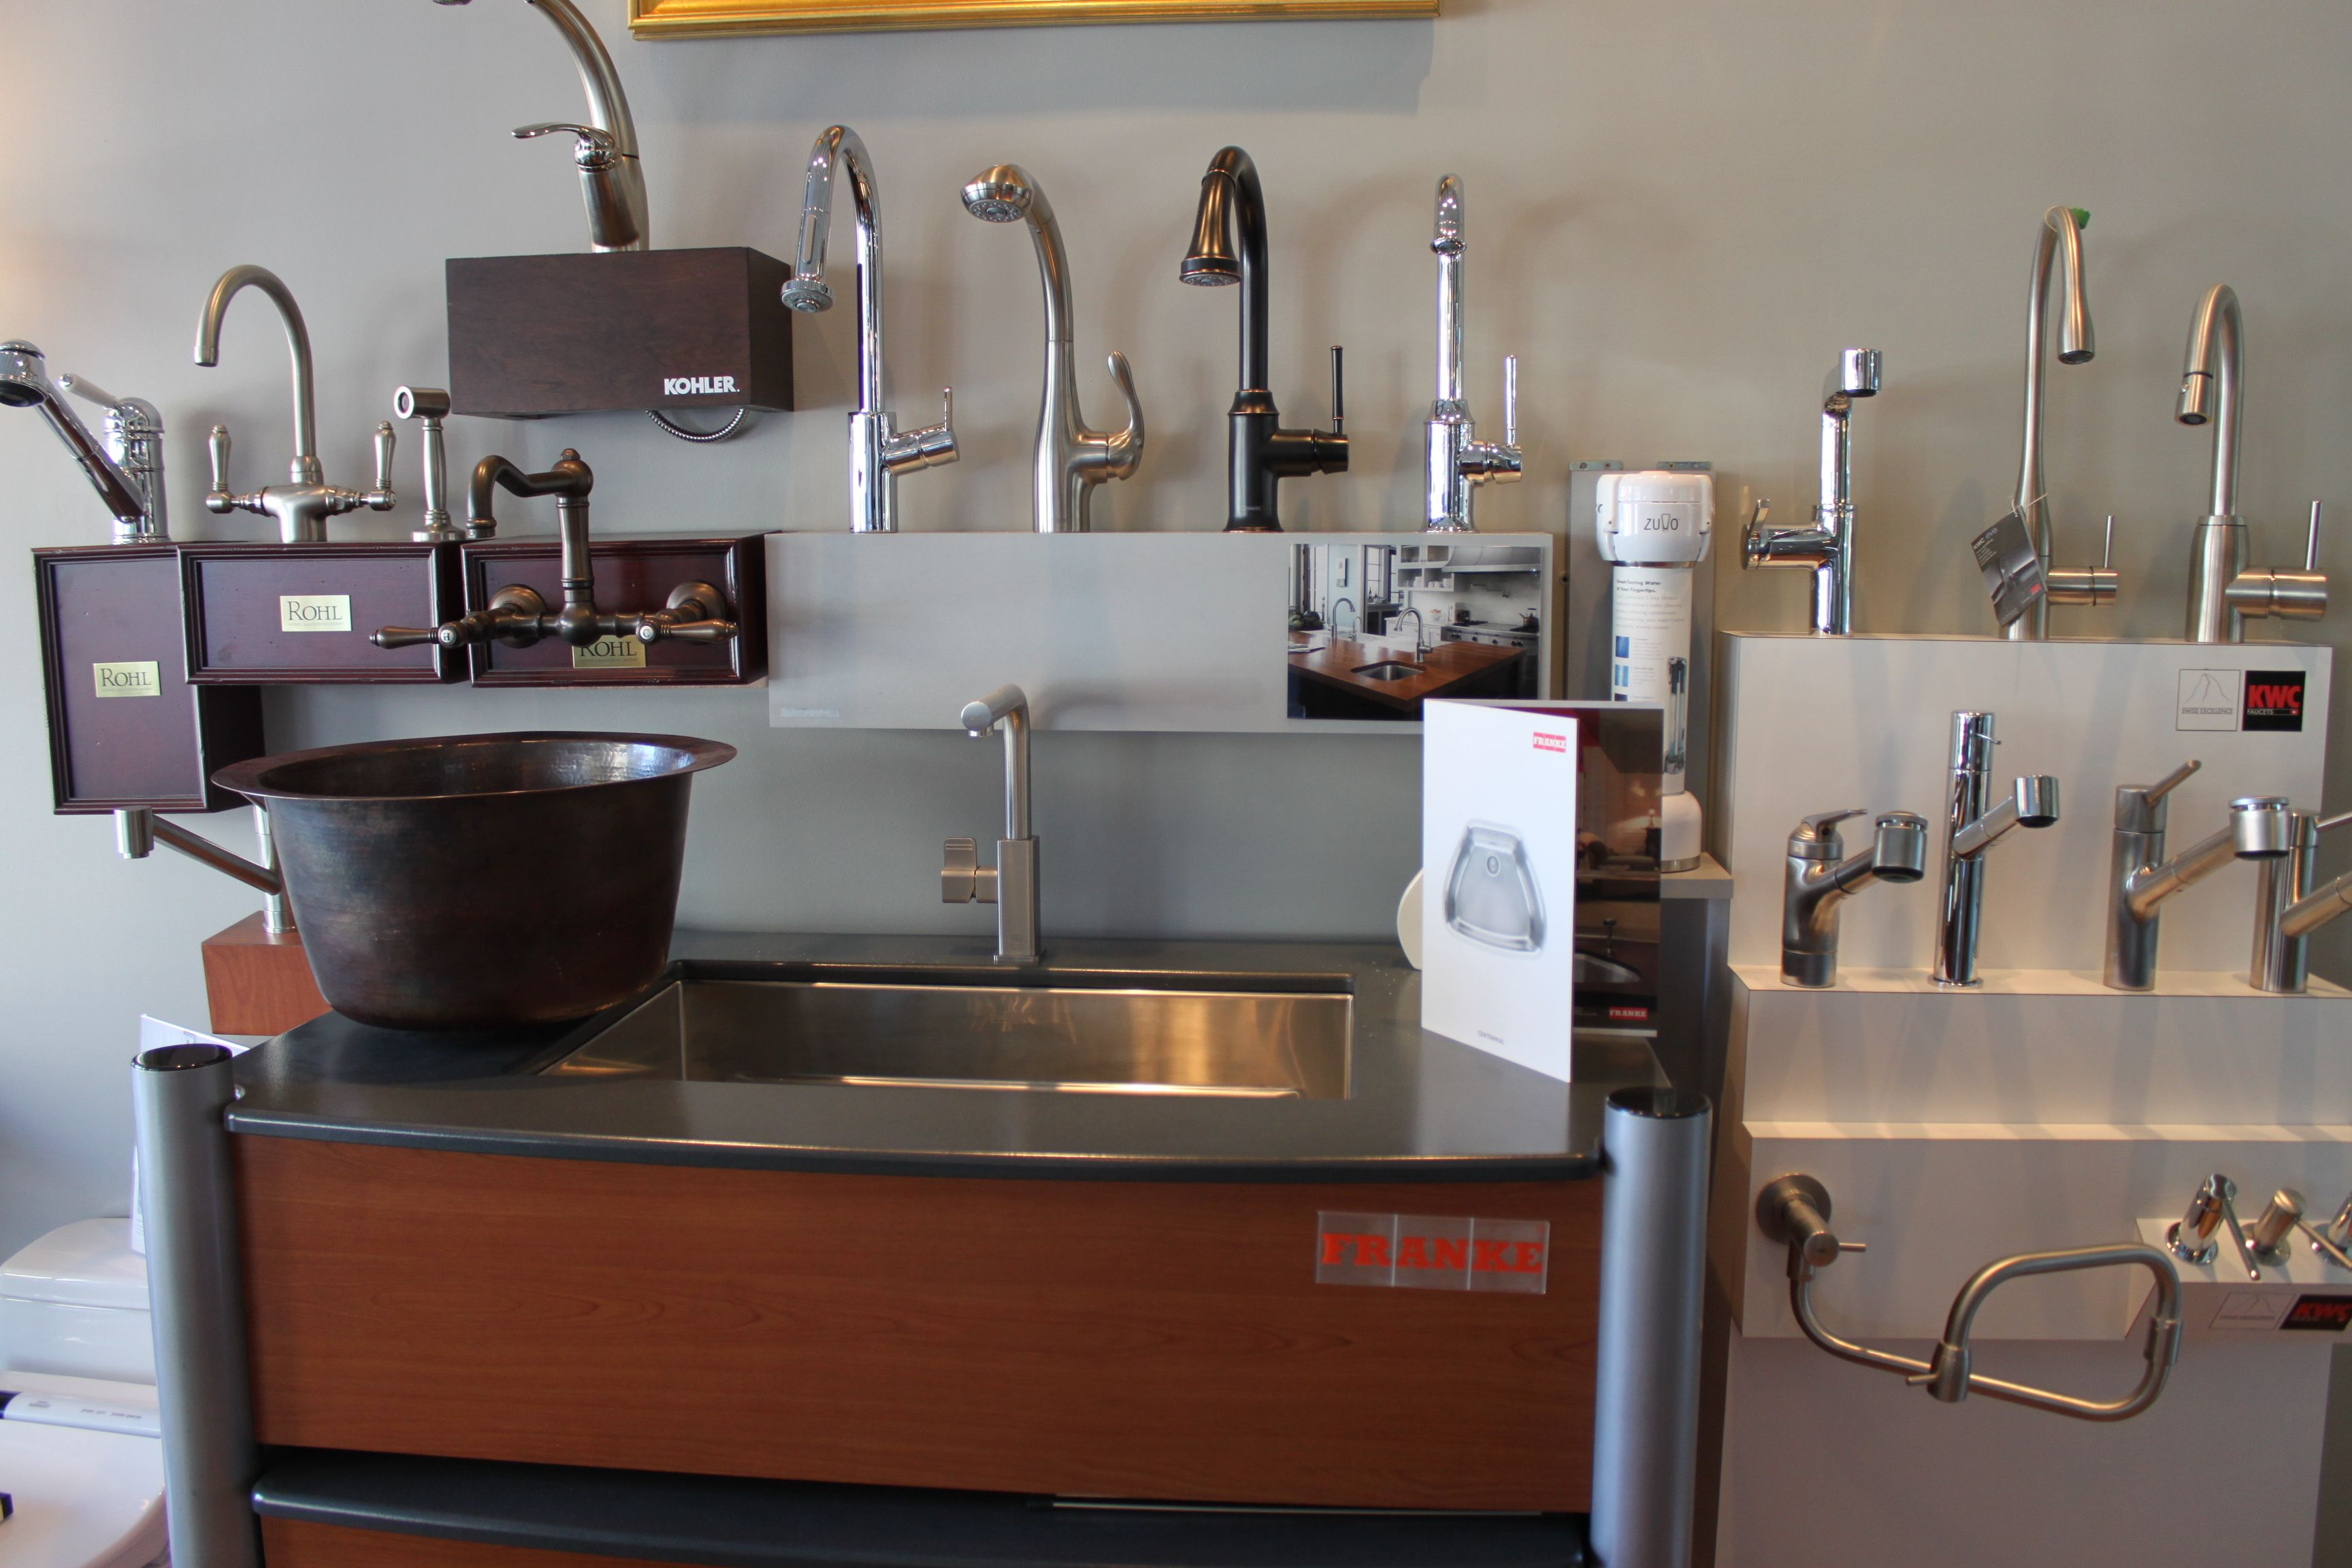 Uncategorized Franke Kitchen Appliances the portland showroom also has a wide variety of kitchen faucets kitchens